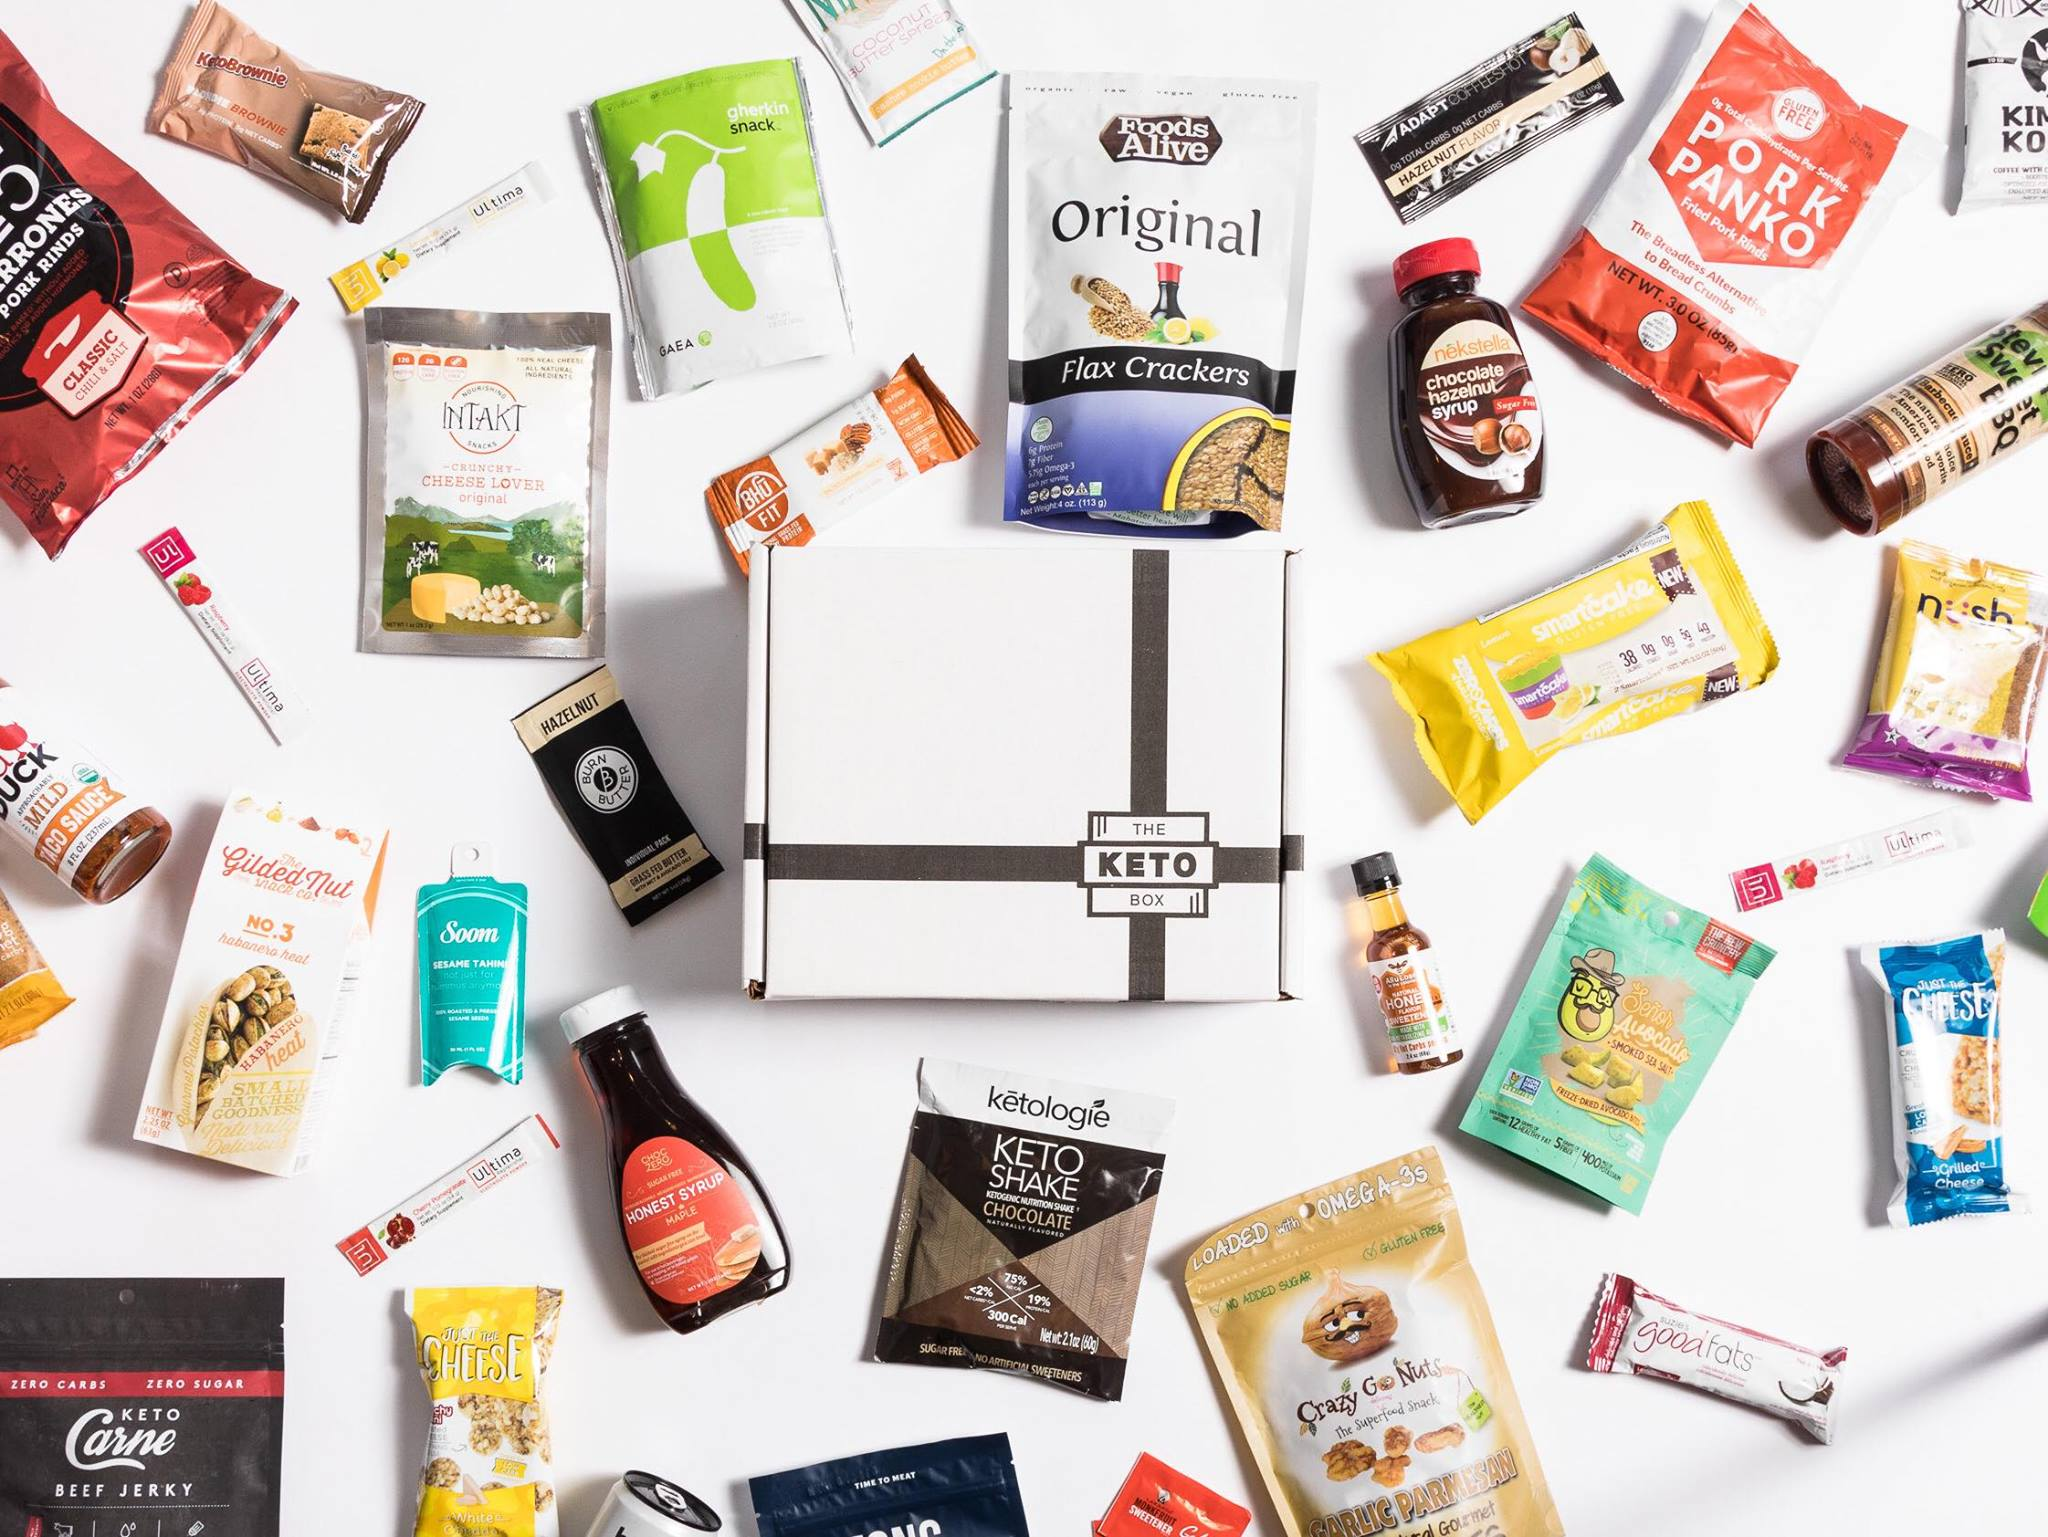 the keto box snack review